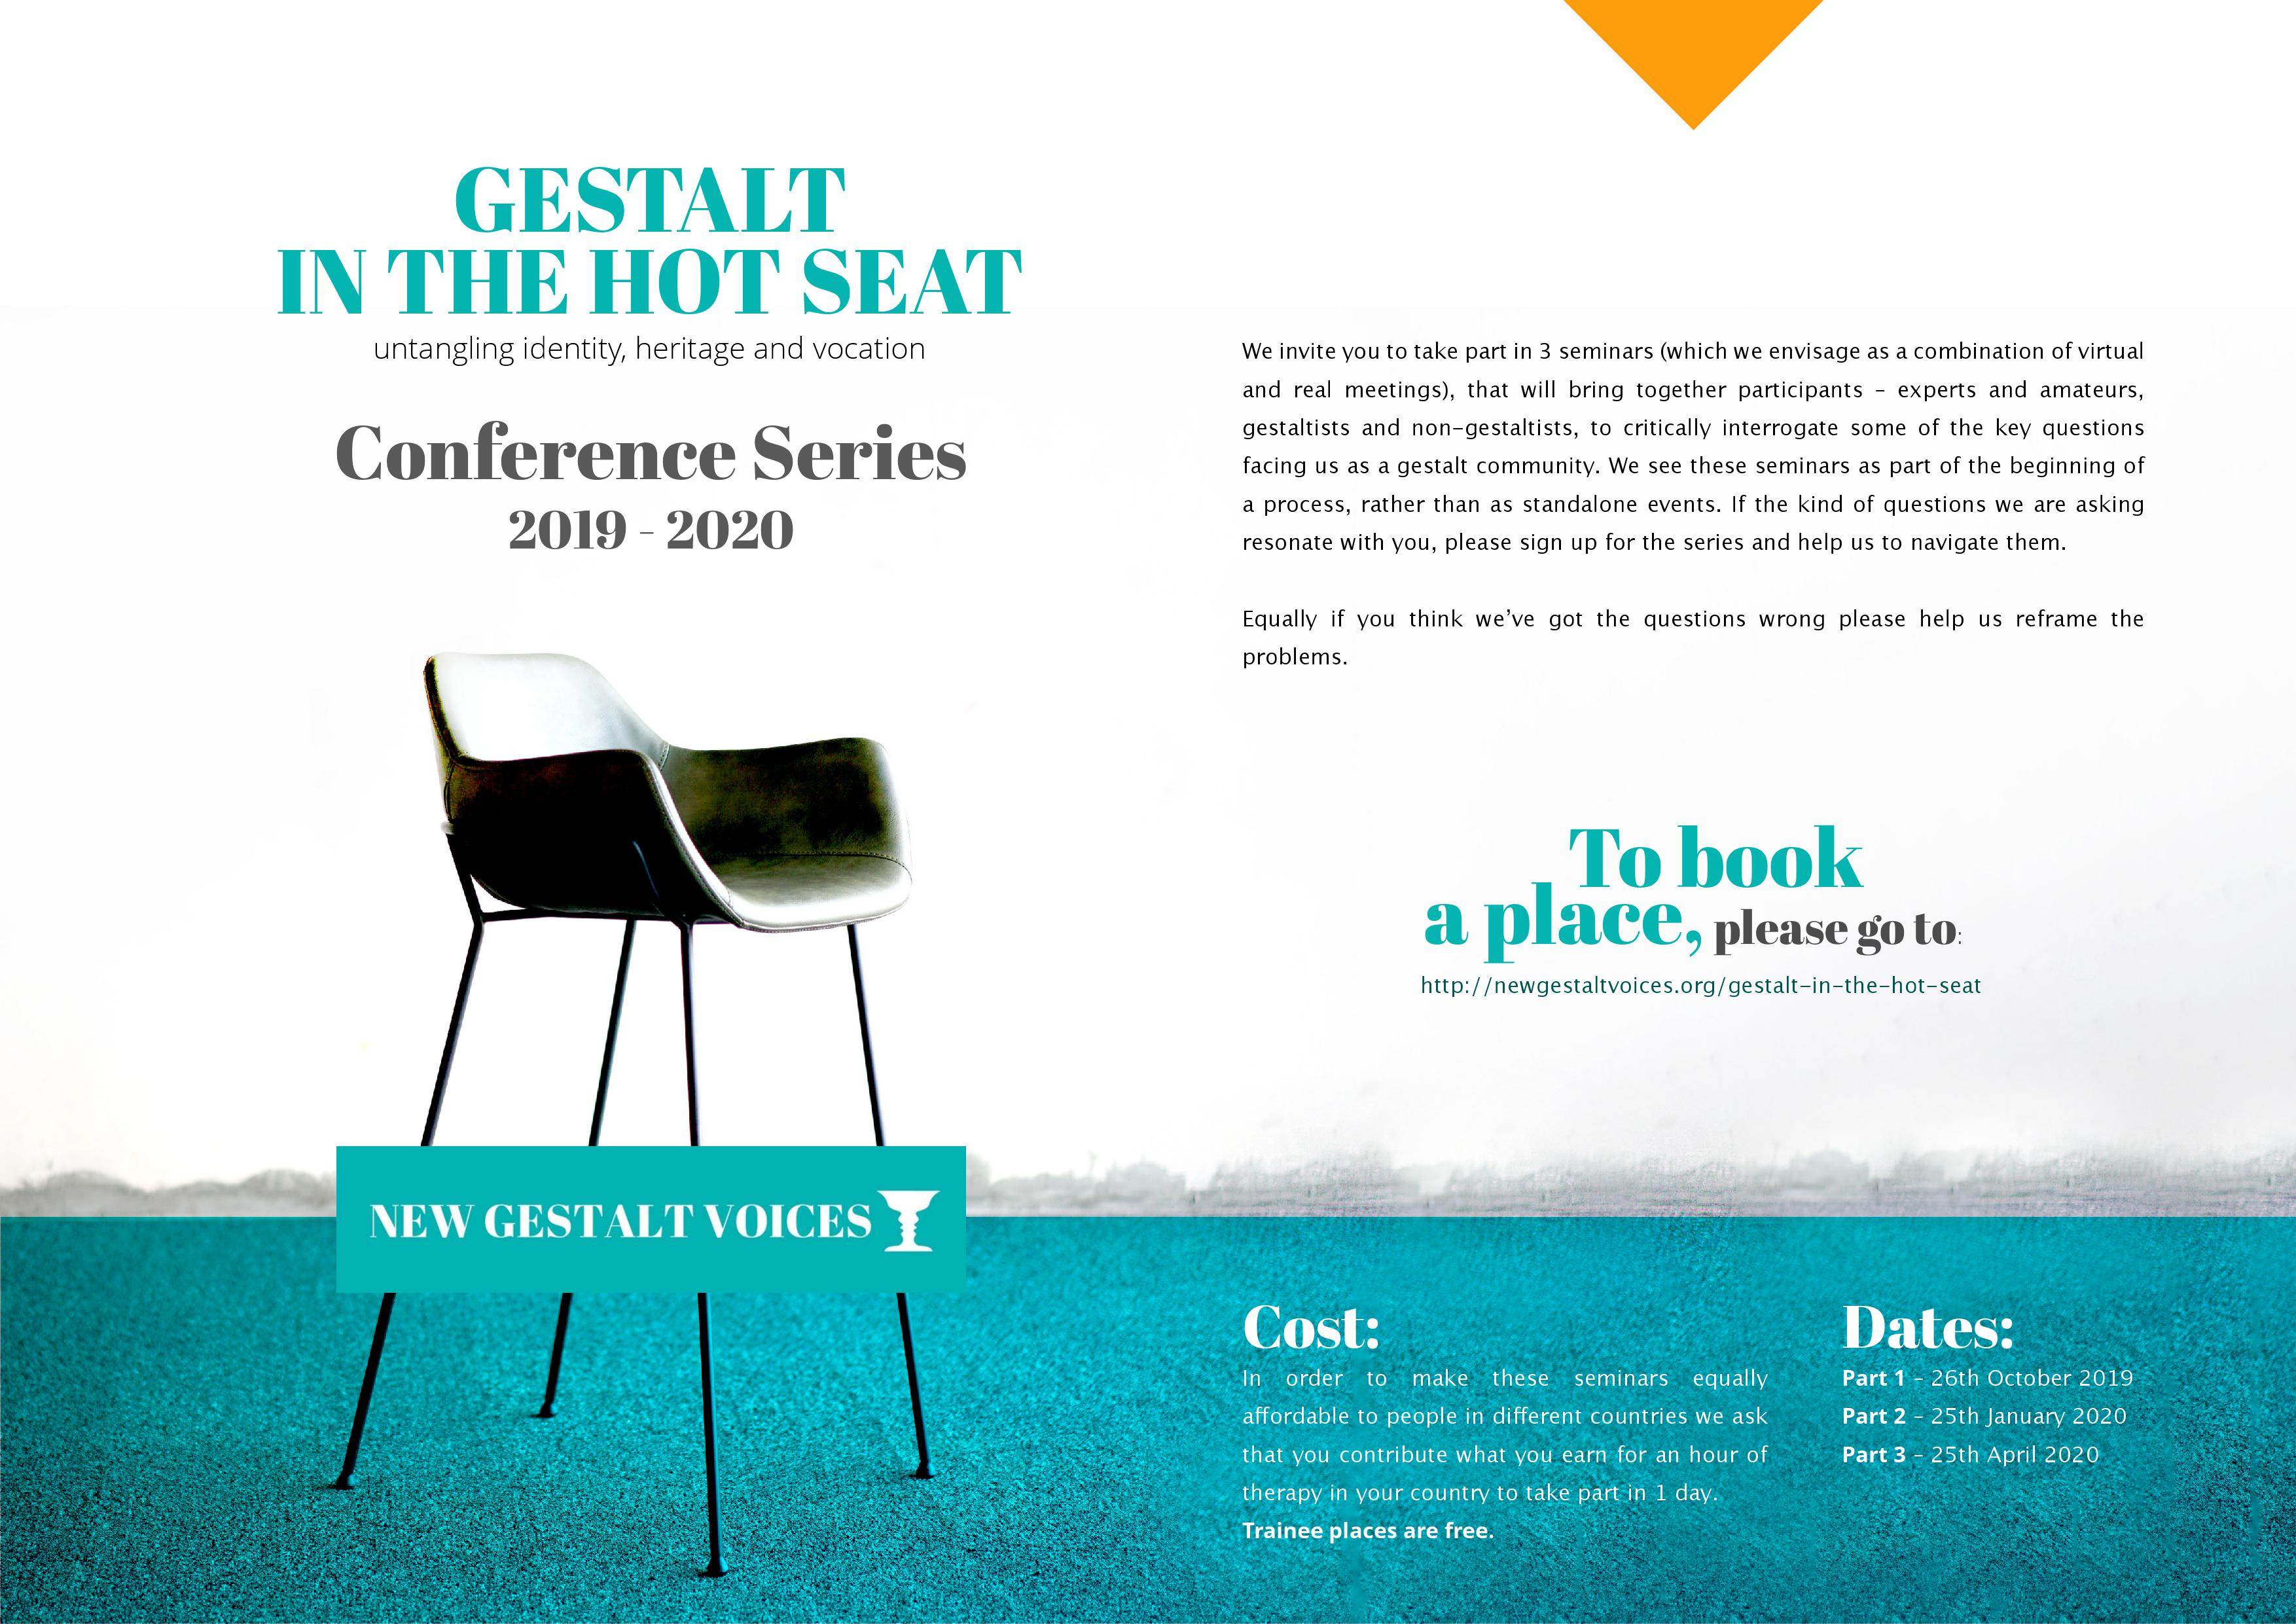 Gestalt in the hot seat